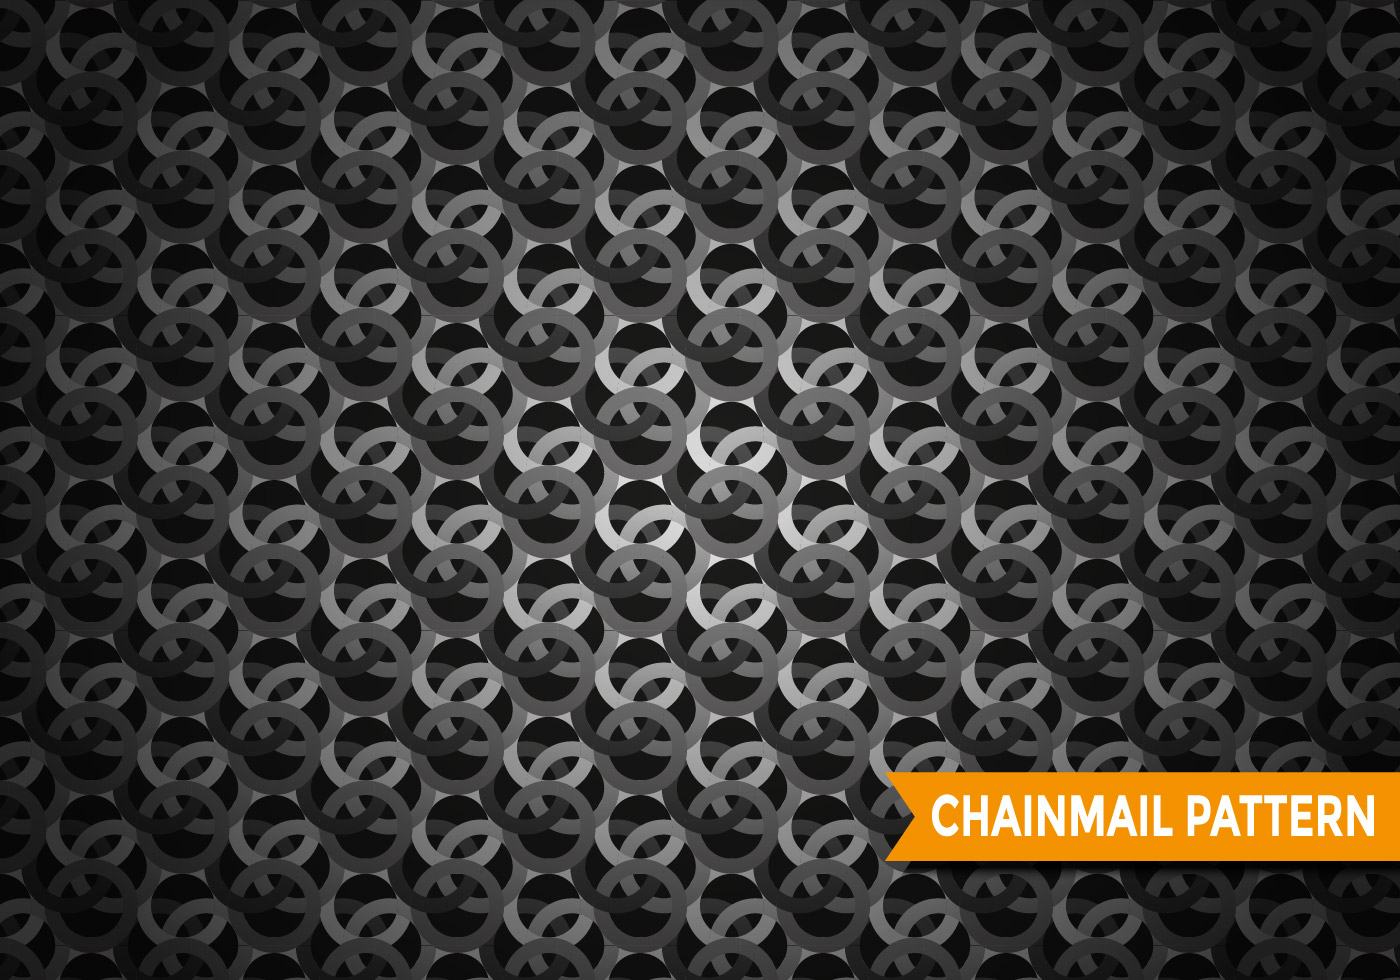 Chainmail Pattern Vector  Download Free Vector Art Stock